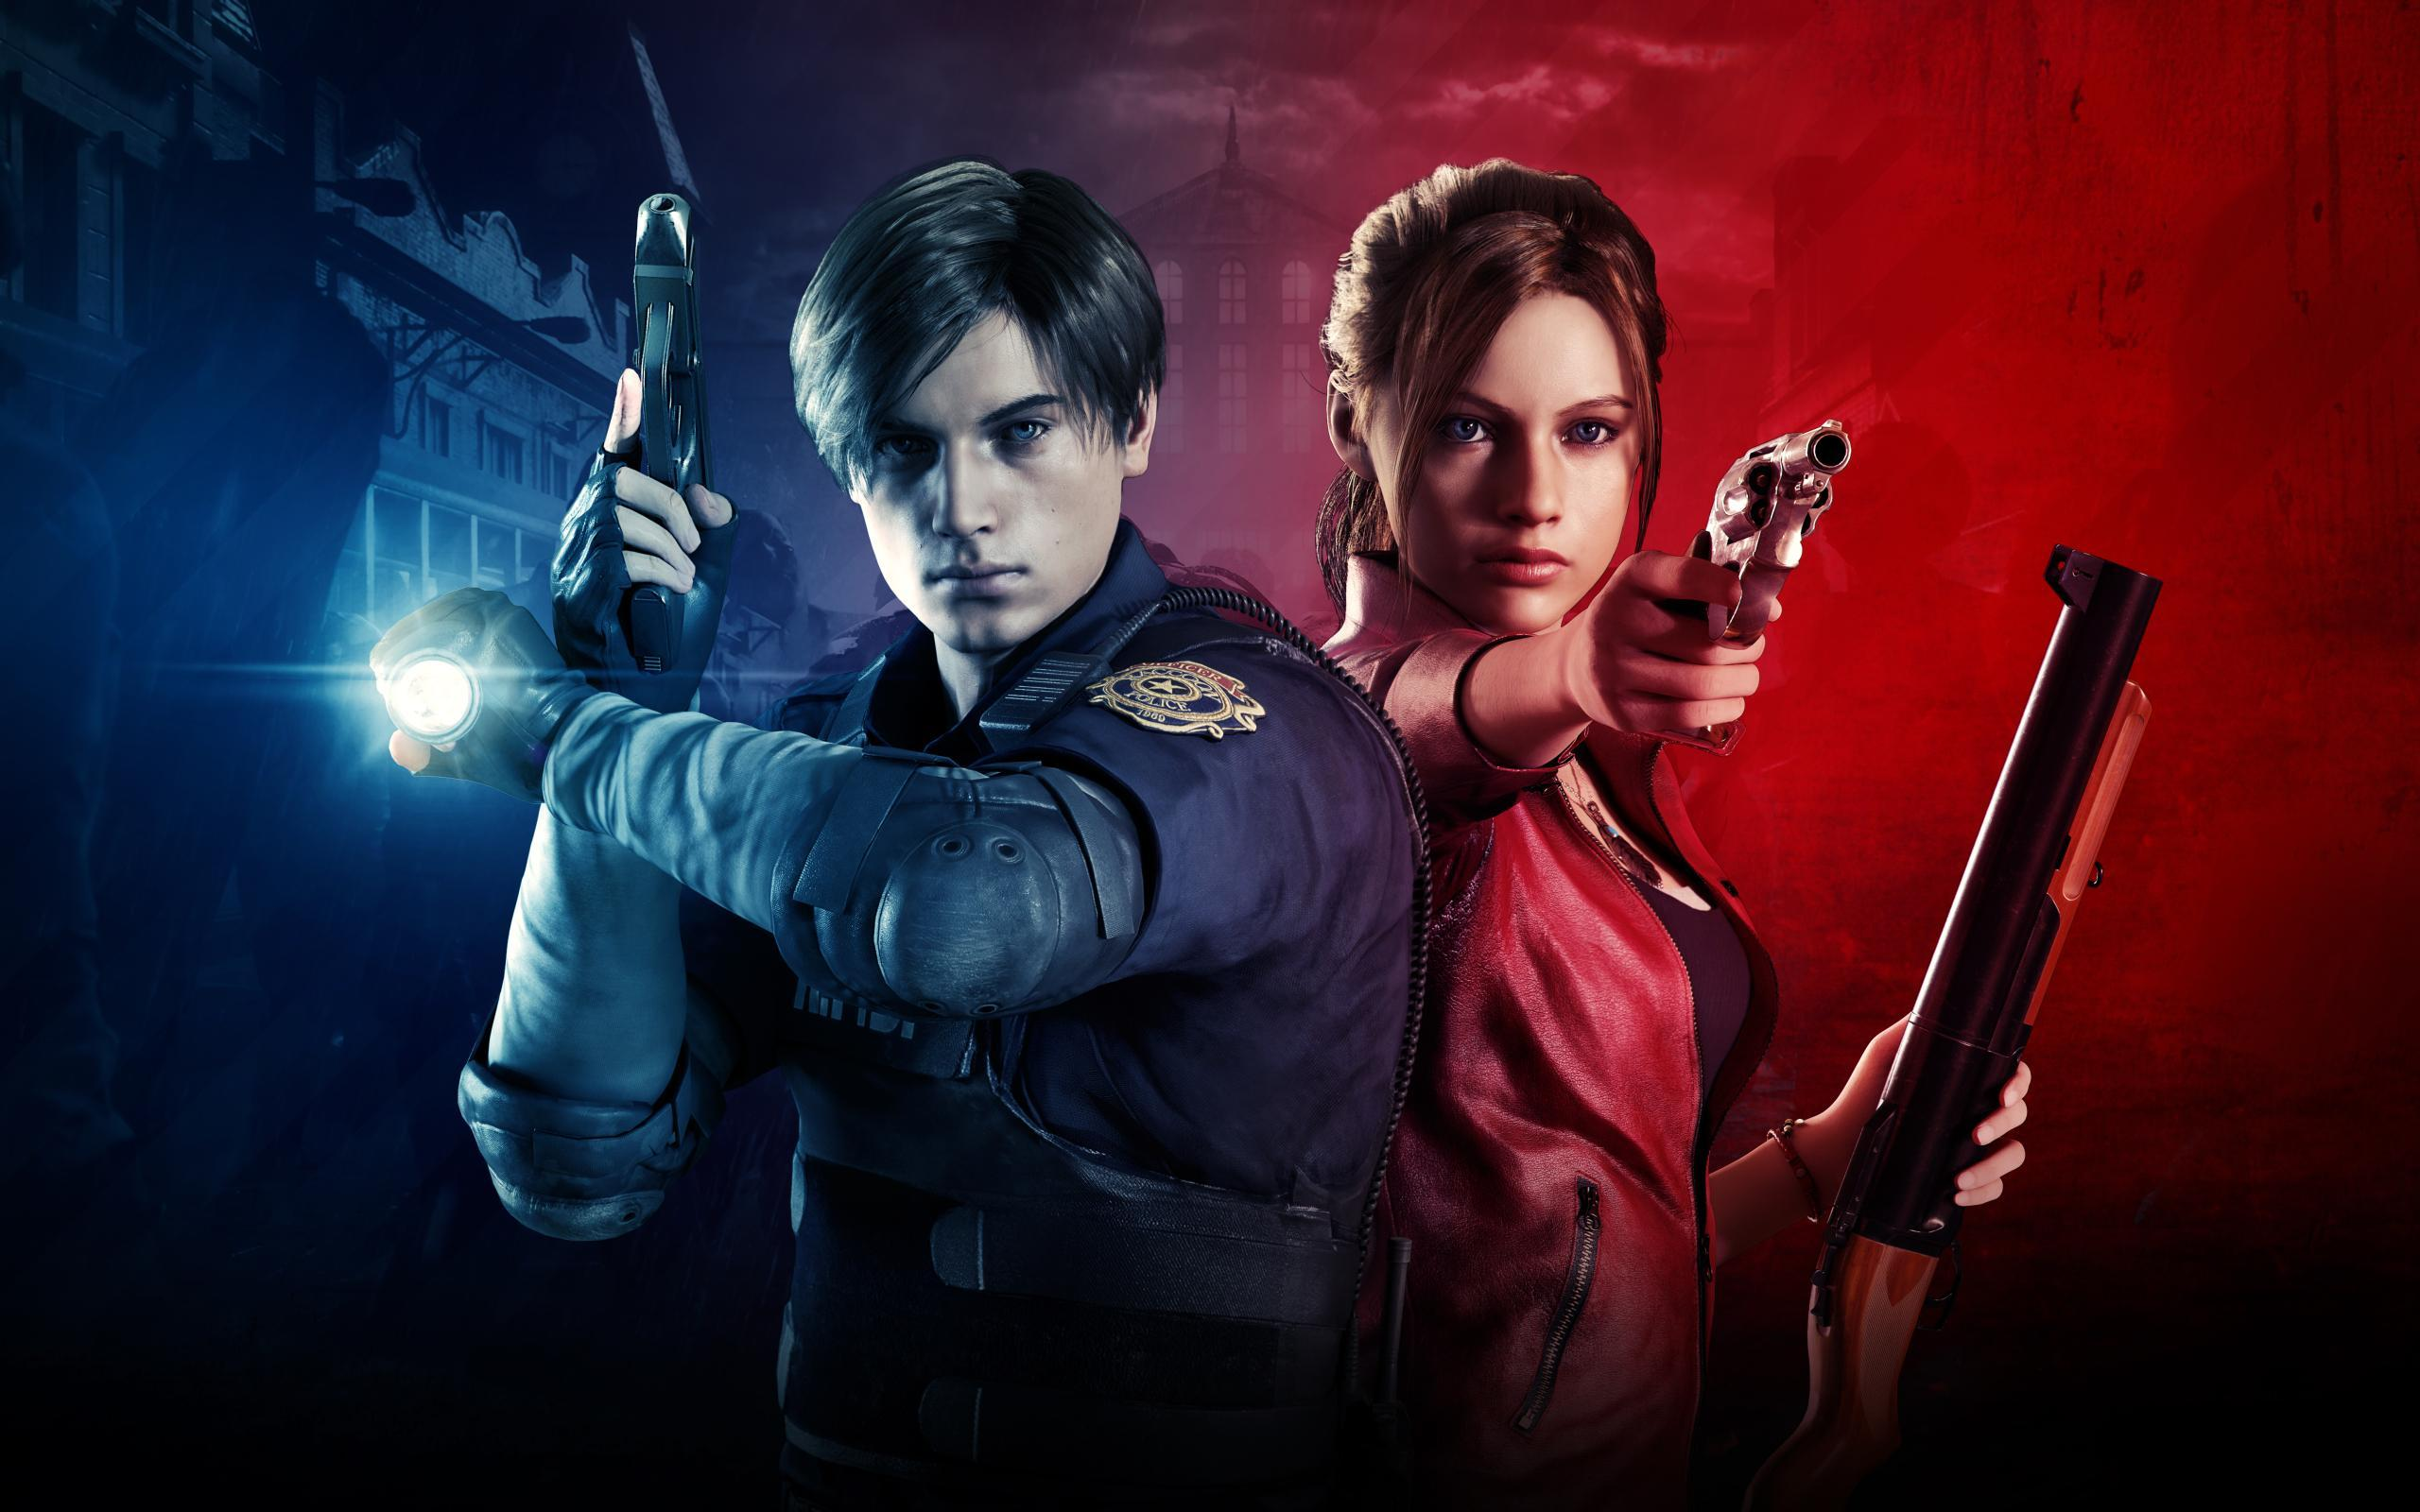 Leon Kennedy And Claire Redfield Wallpapers - Wallpaper Cave